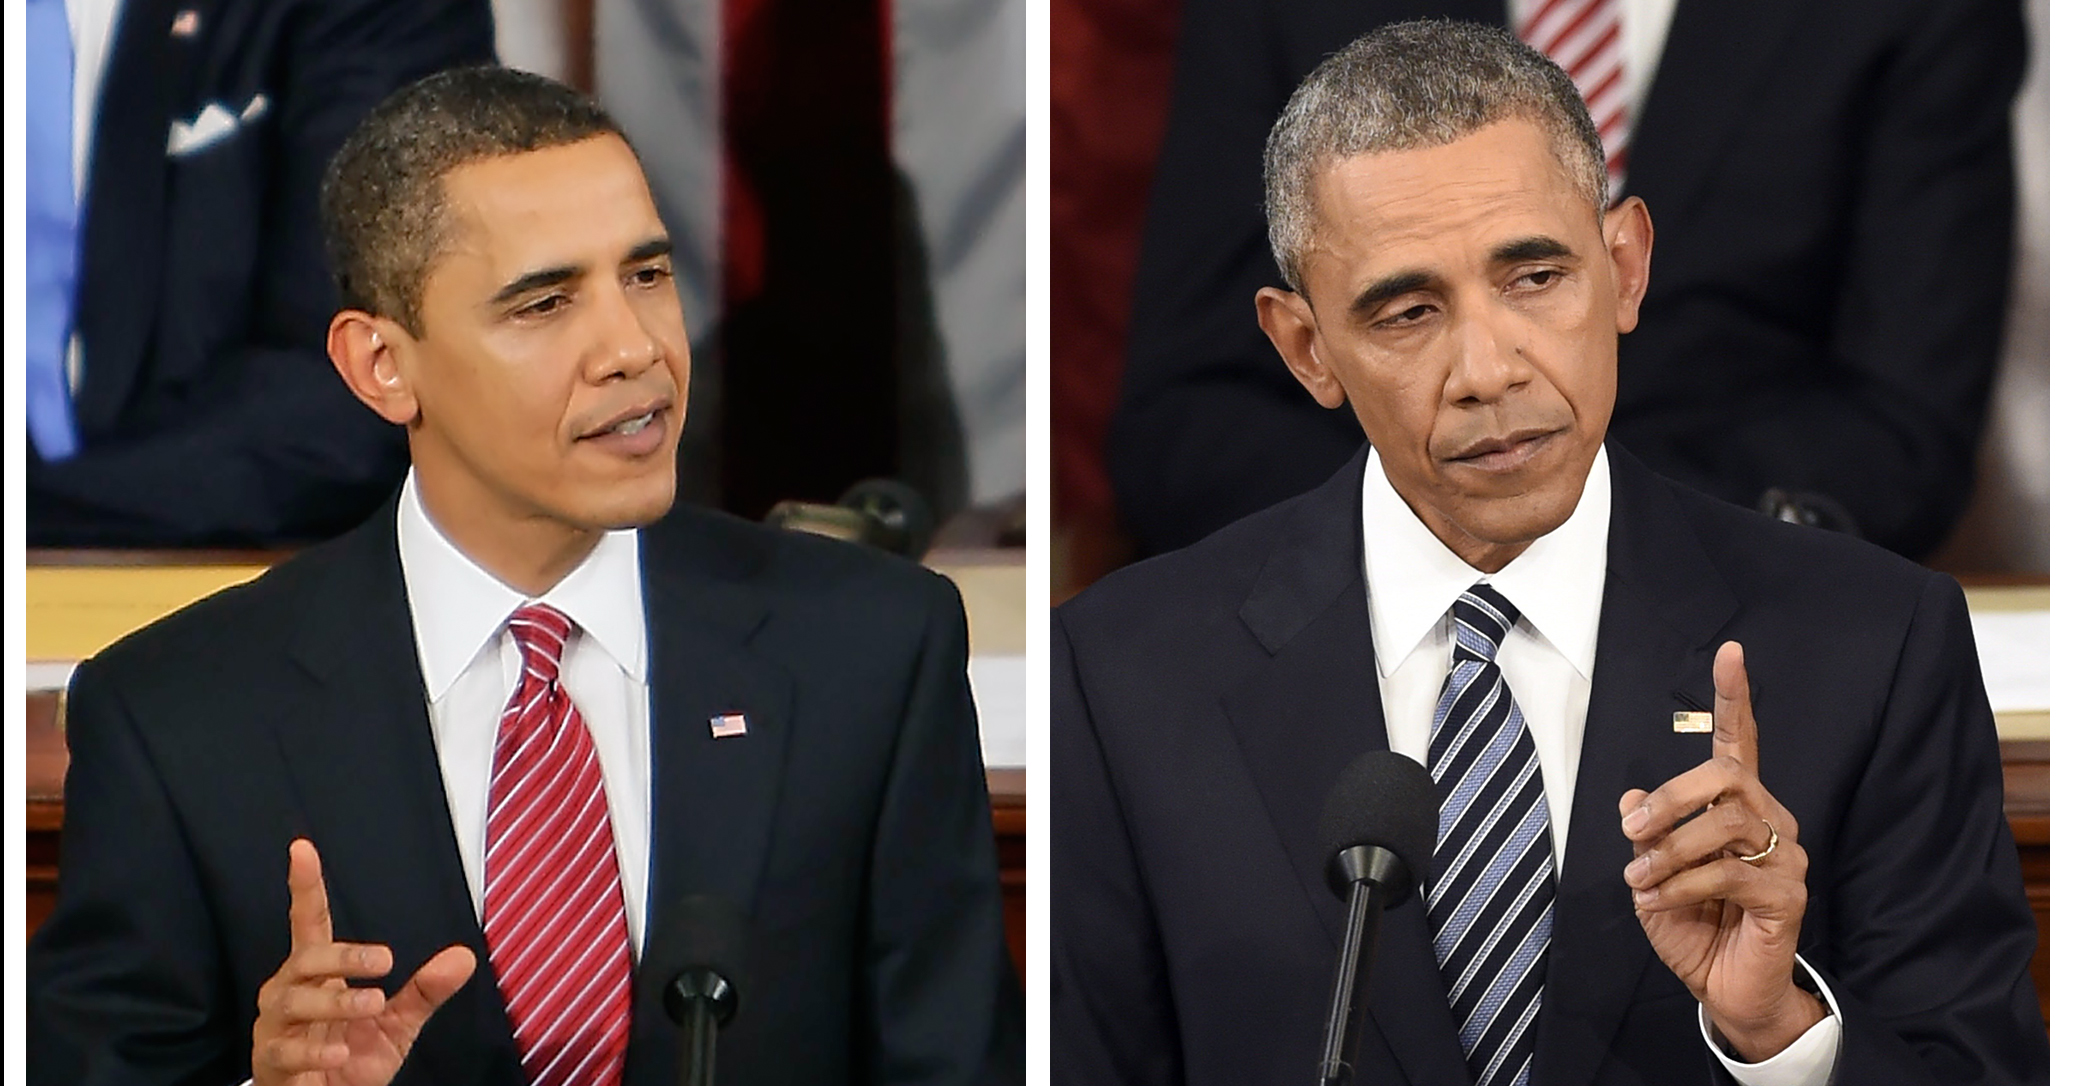 See How President Obama Has Aged Since His 2009 Address | Time